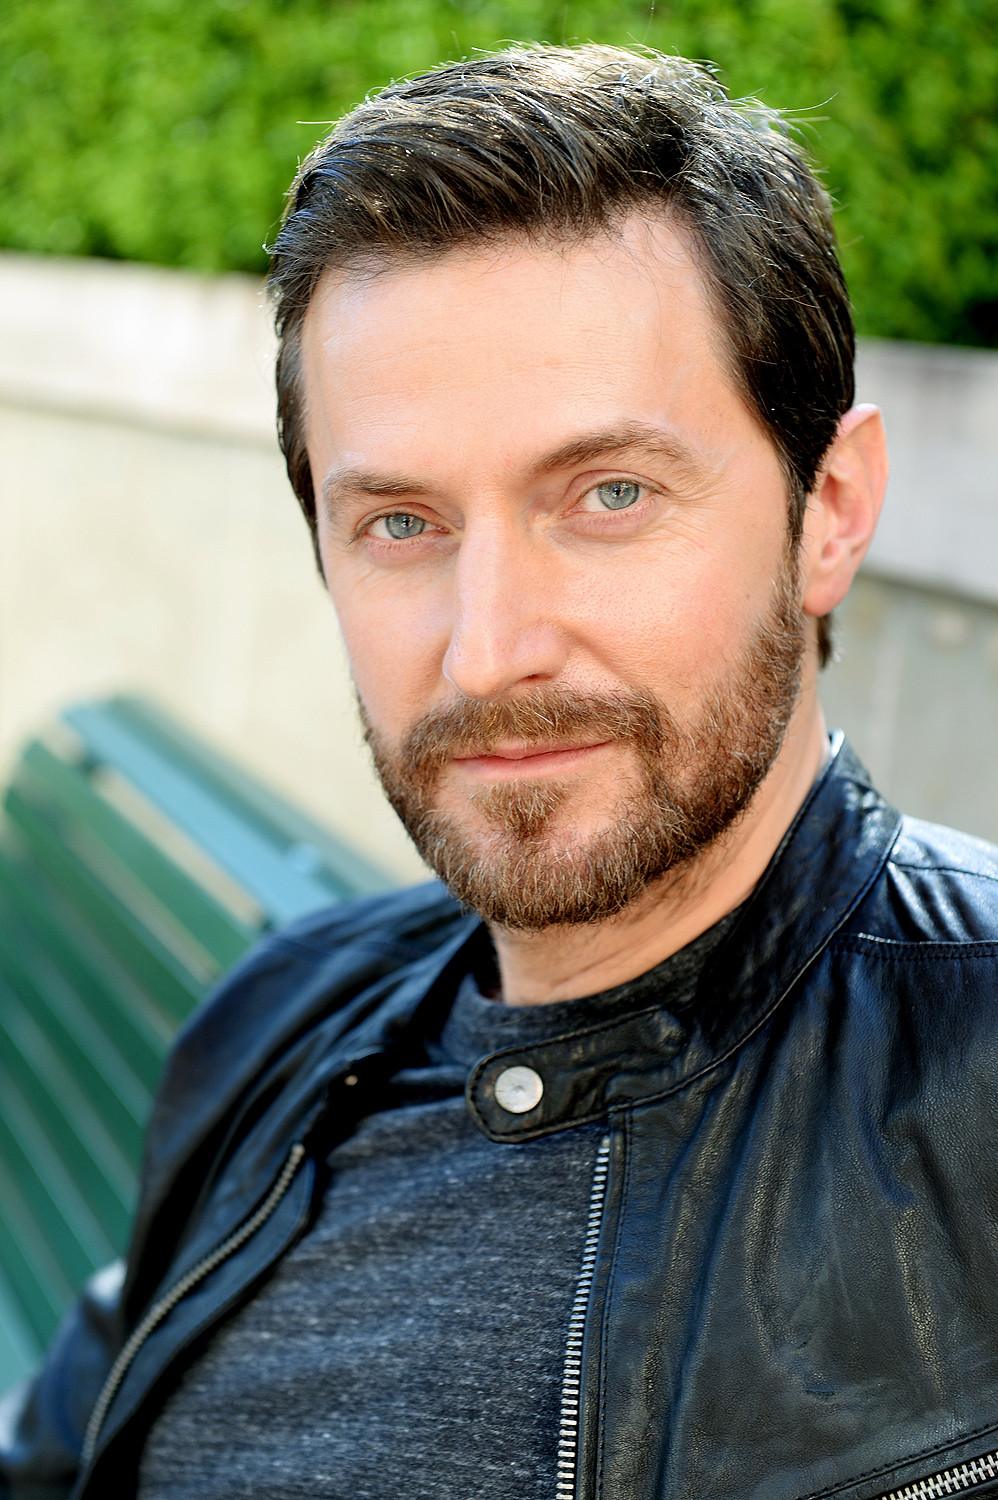 Richard Armitage earned a  million dollar salary, leaving the net worth at 2 million in 2017